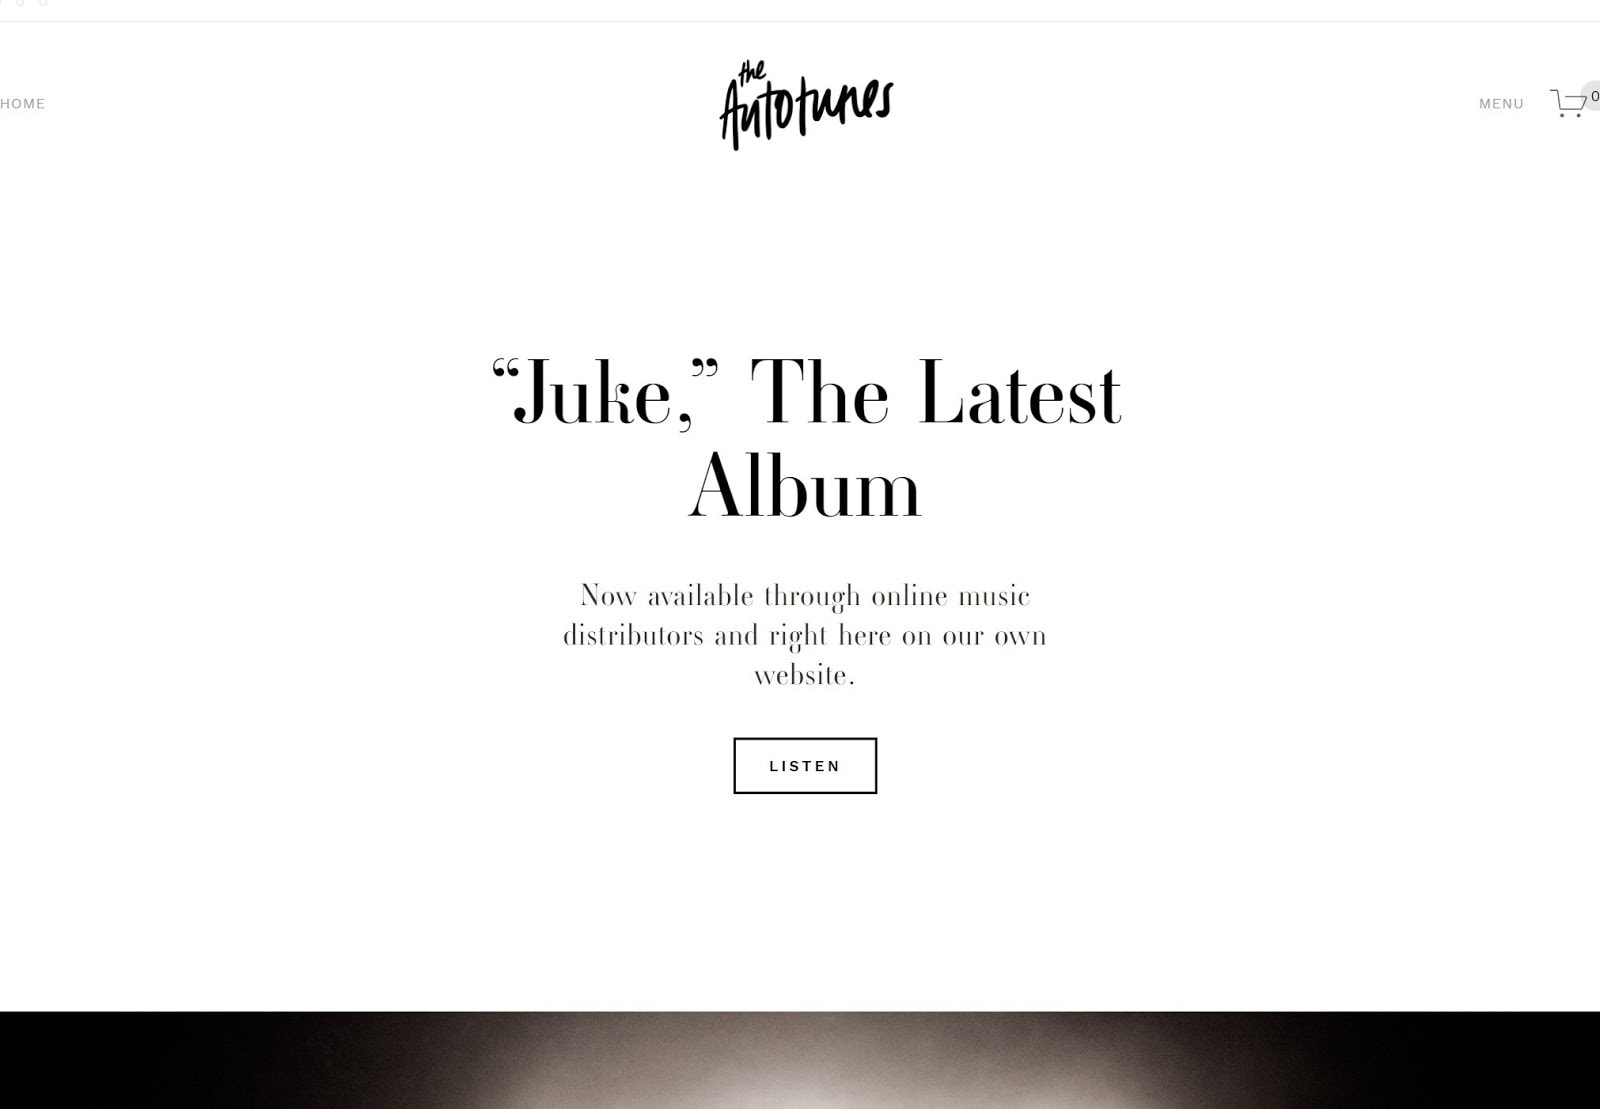 8 Best Squarespace Templates for Musicians (+2 to Avoid) - Dawn